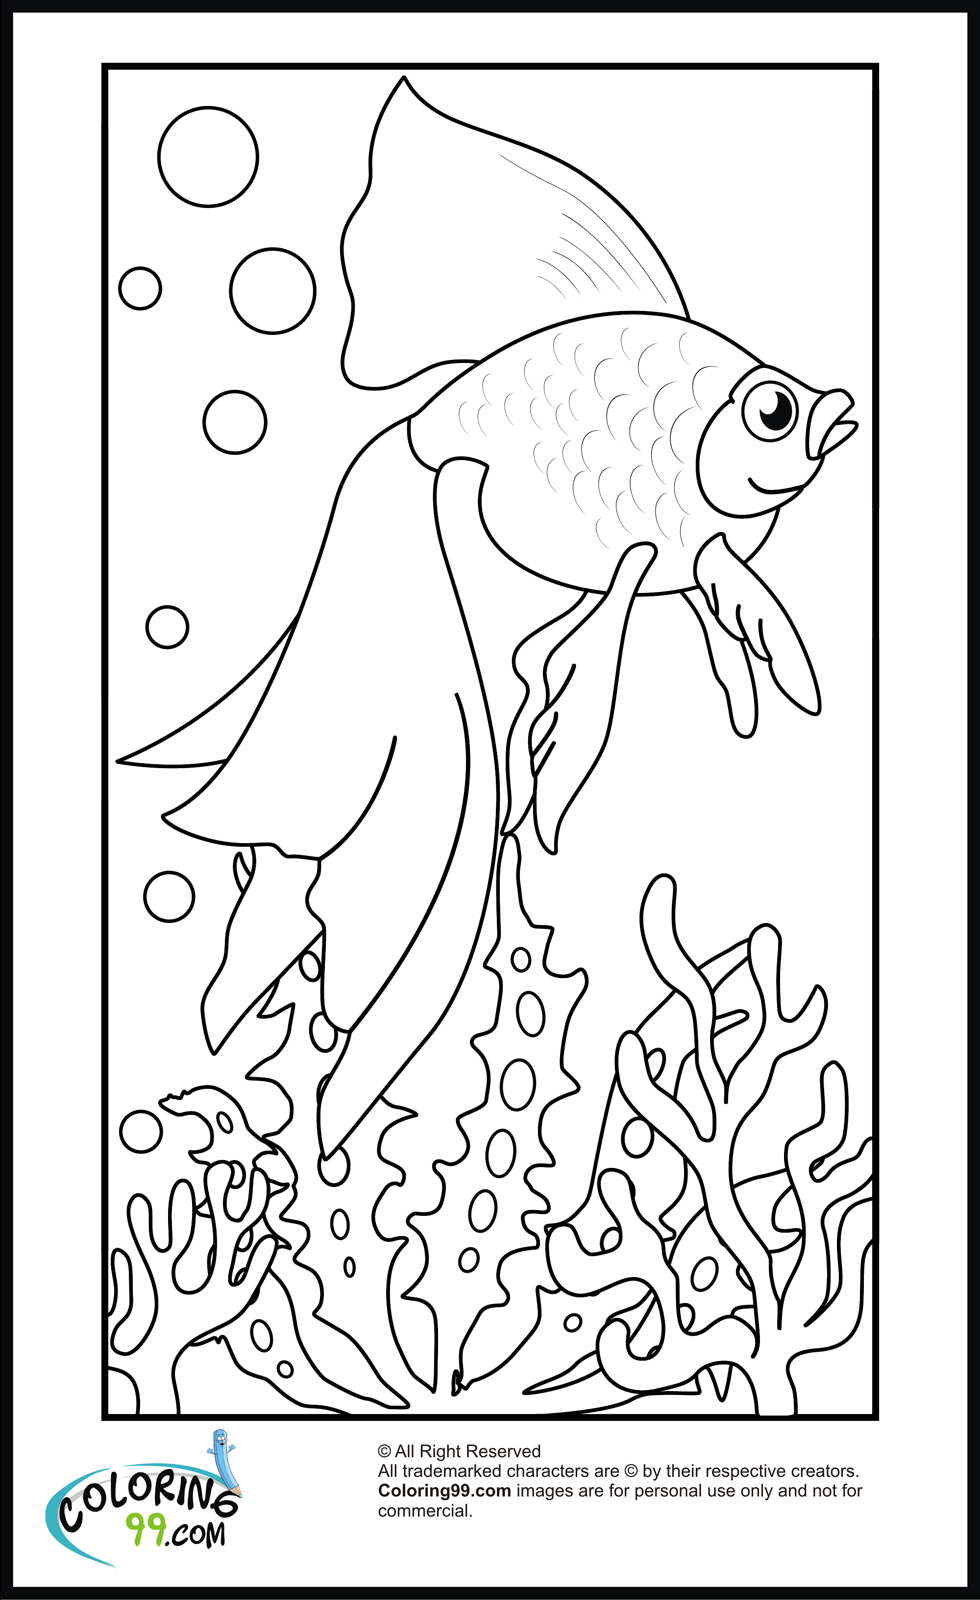 coloring pages free online - photo#37